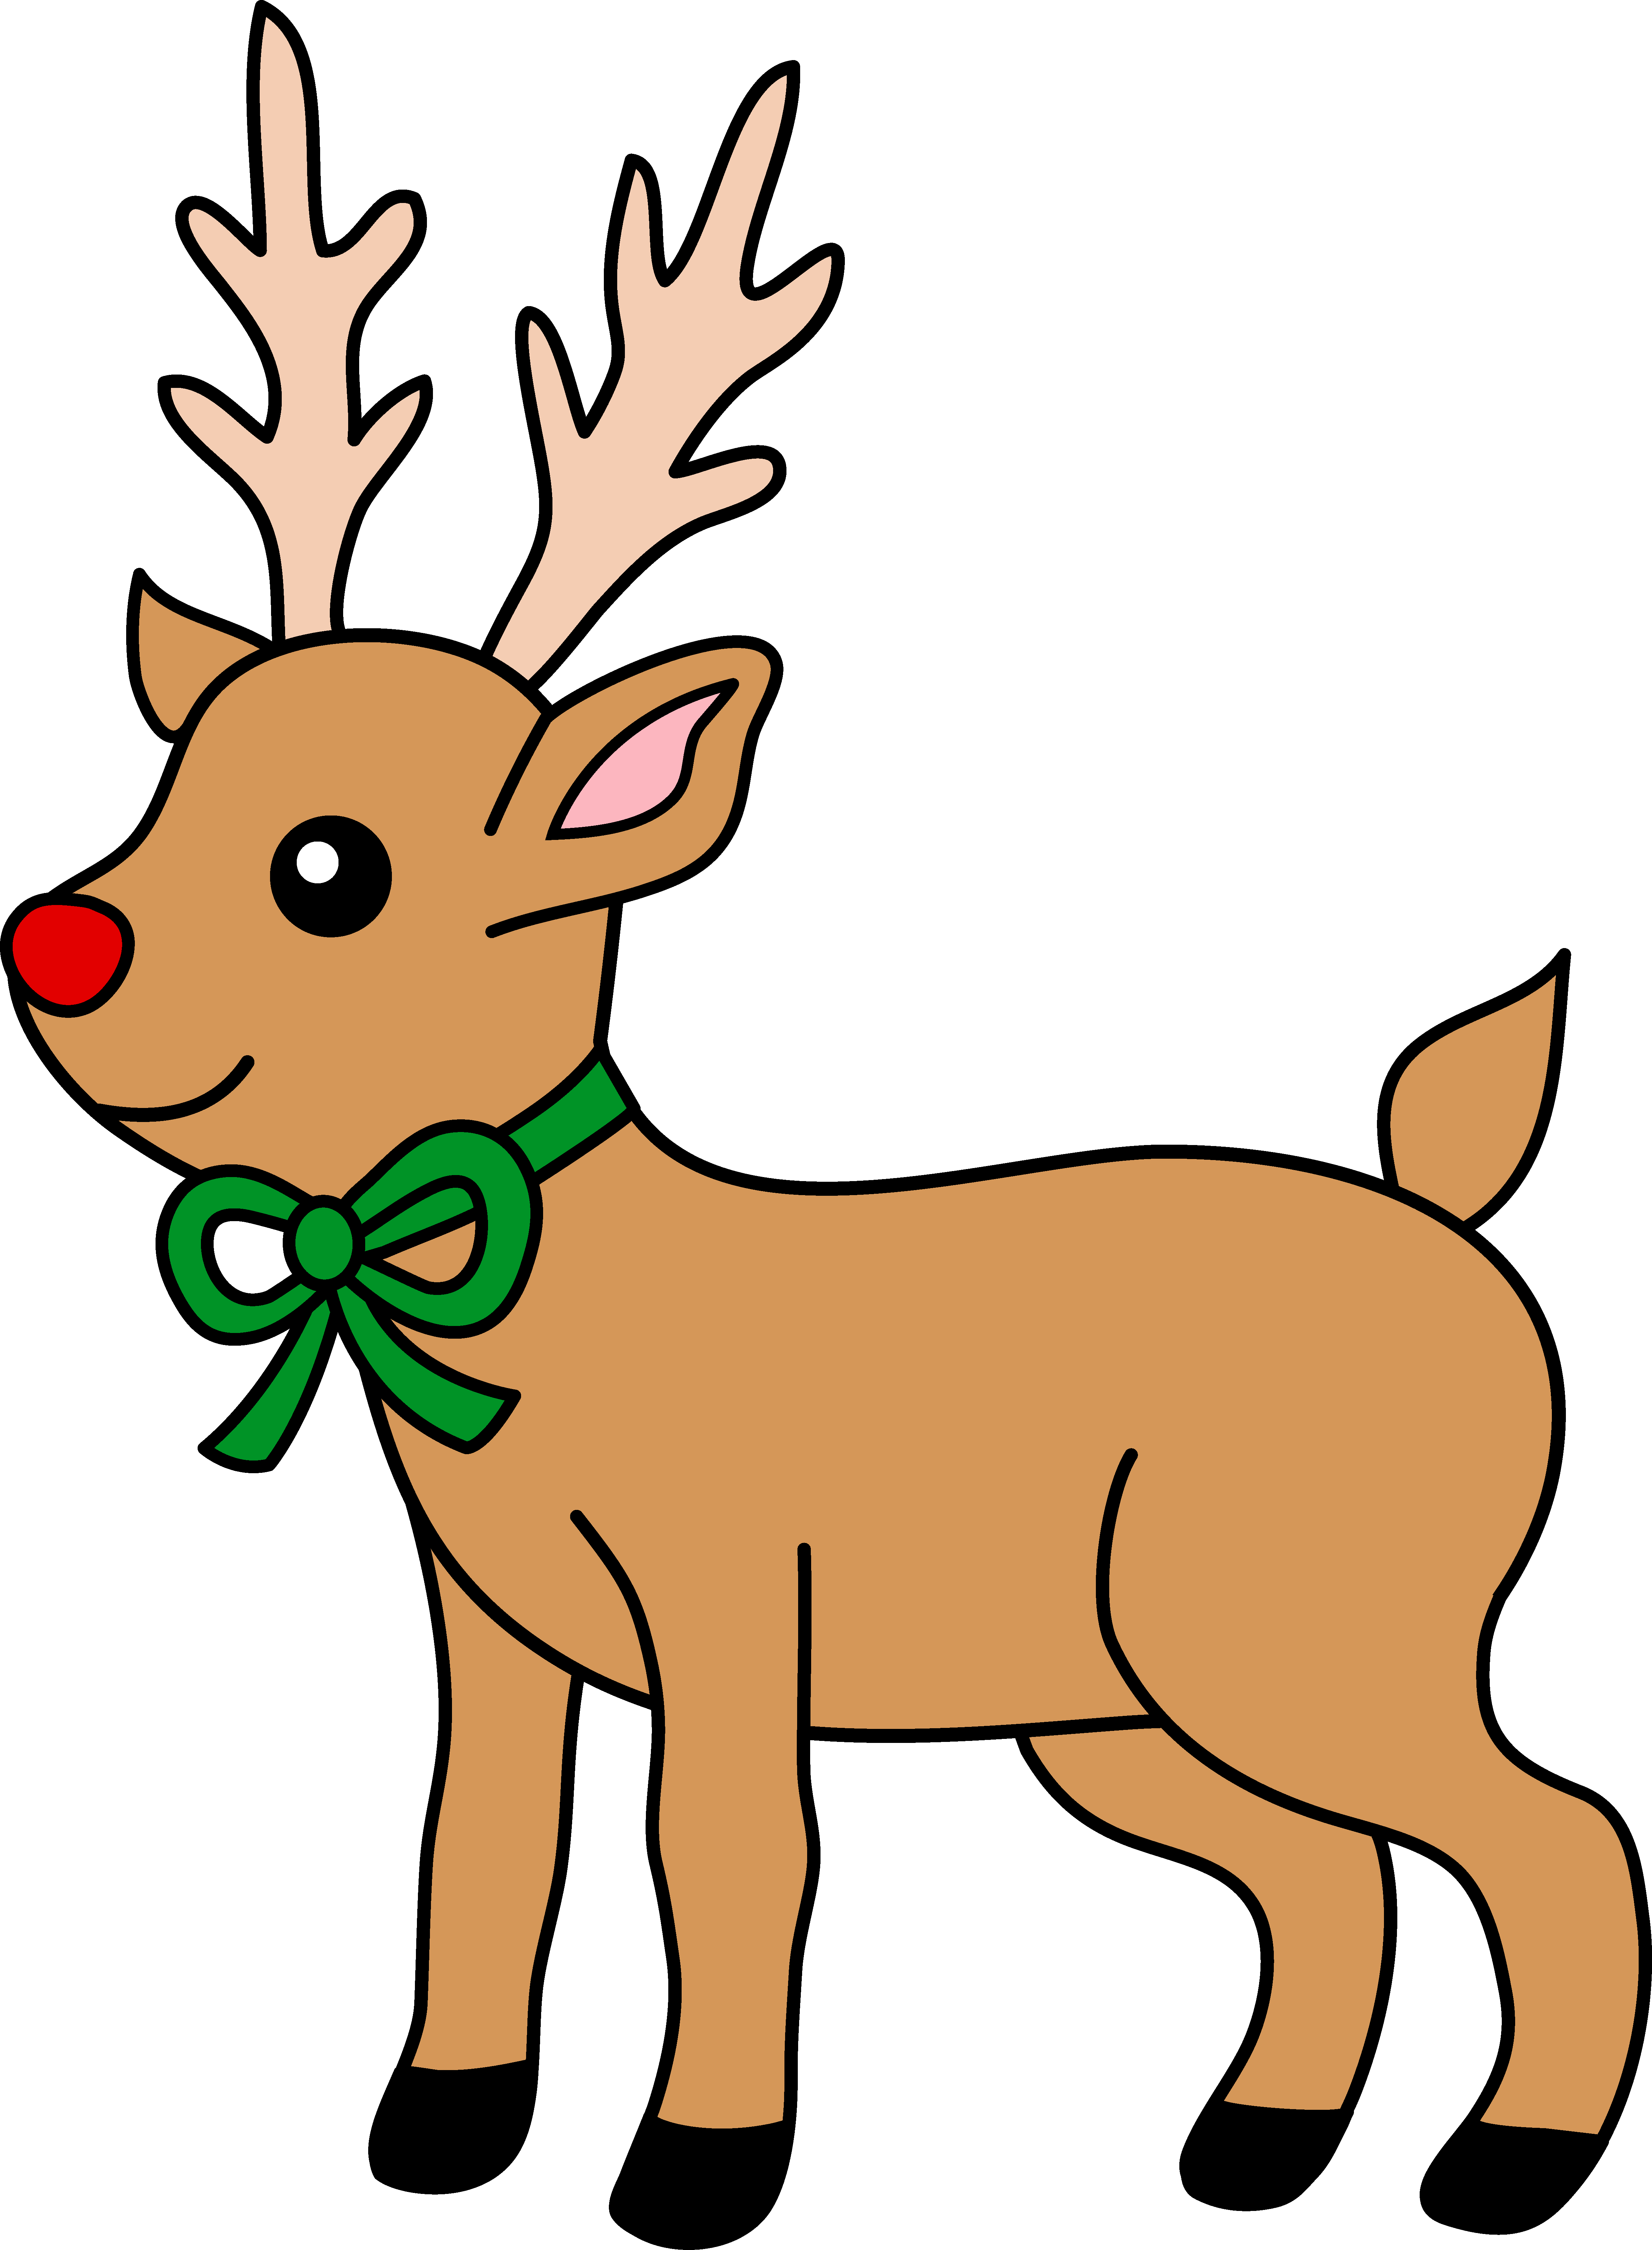 Free Animated Reindeer Clipart.